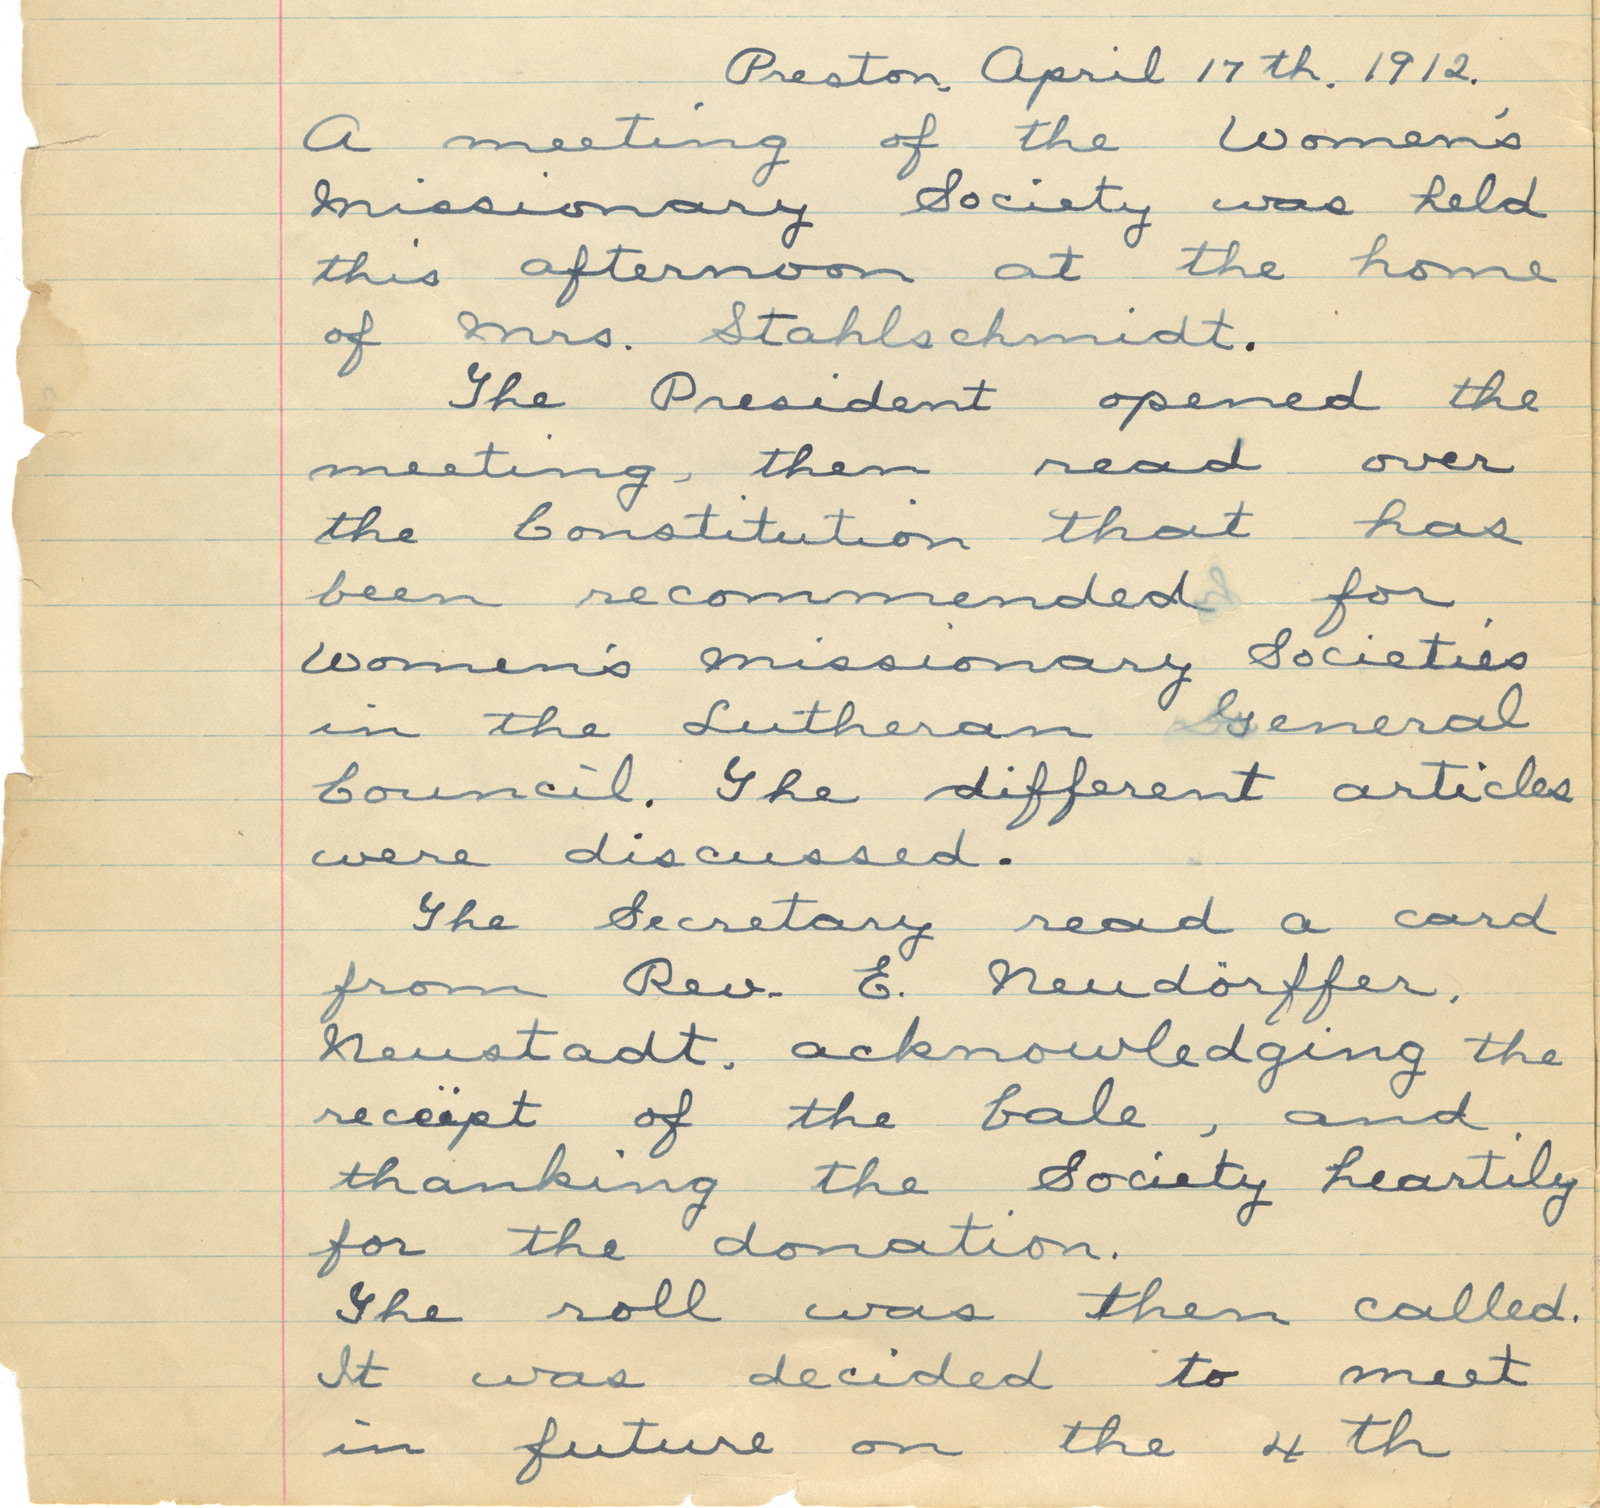 Minutes of the Women's Missionary Society of St. Peter's Evangelical Lutheran Church, April 17, 1912